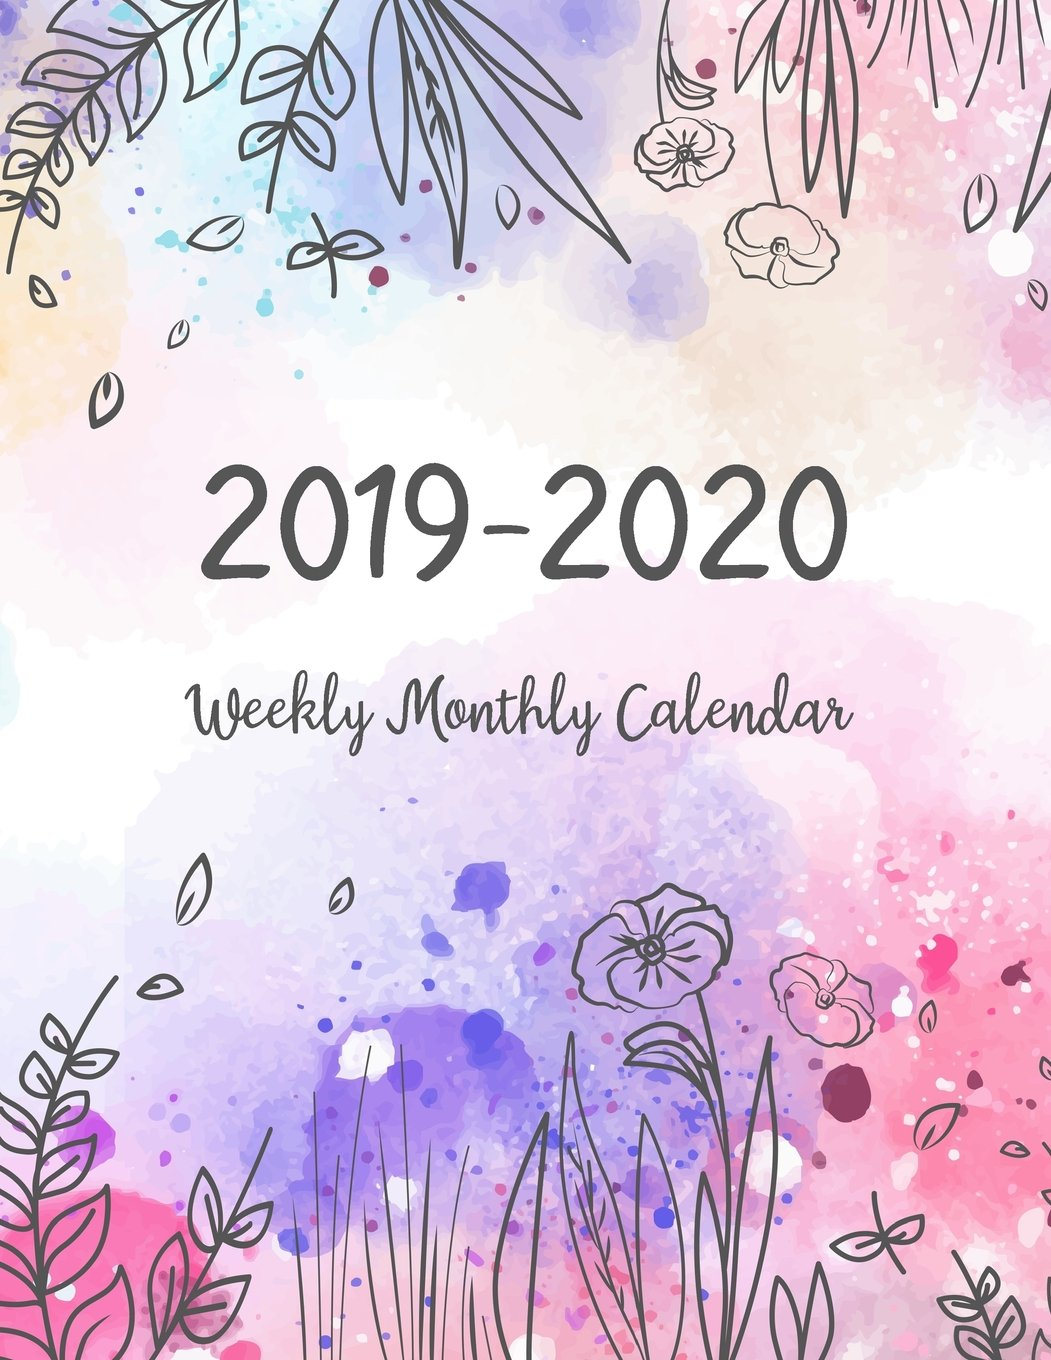 2019 2020 Weekly Monthly Calendar Two Years Daily Weekly Monthly